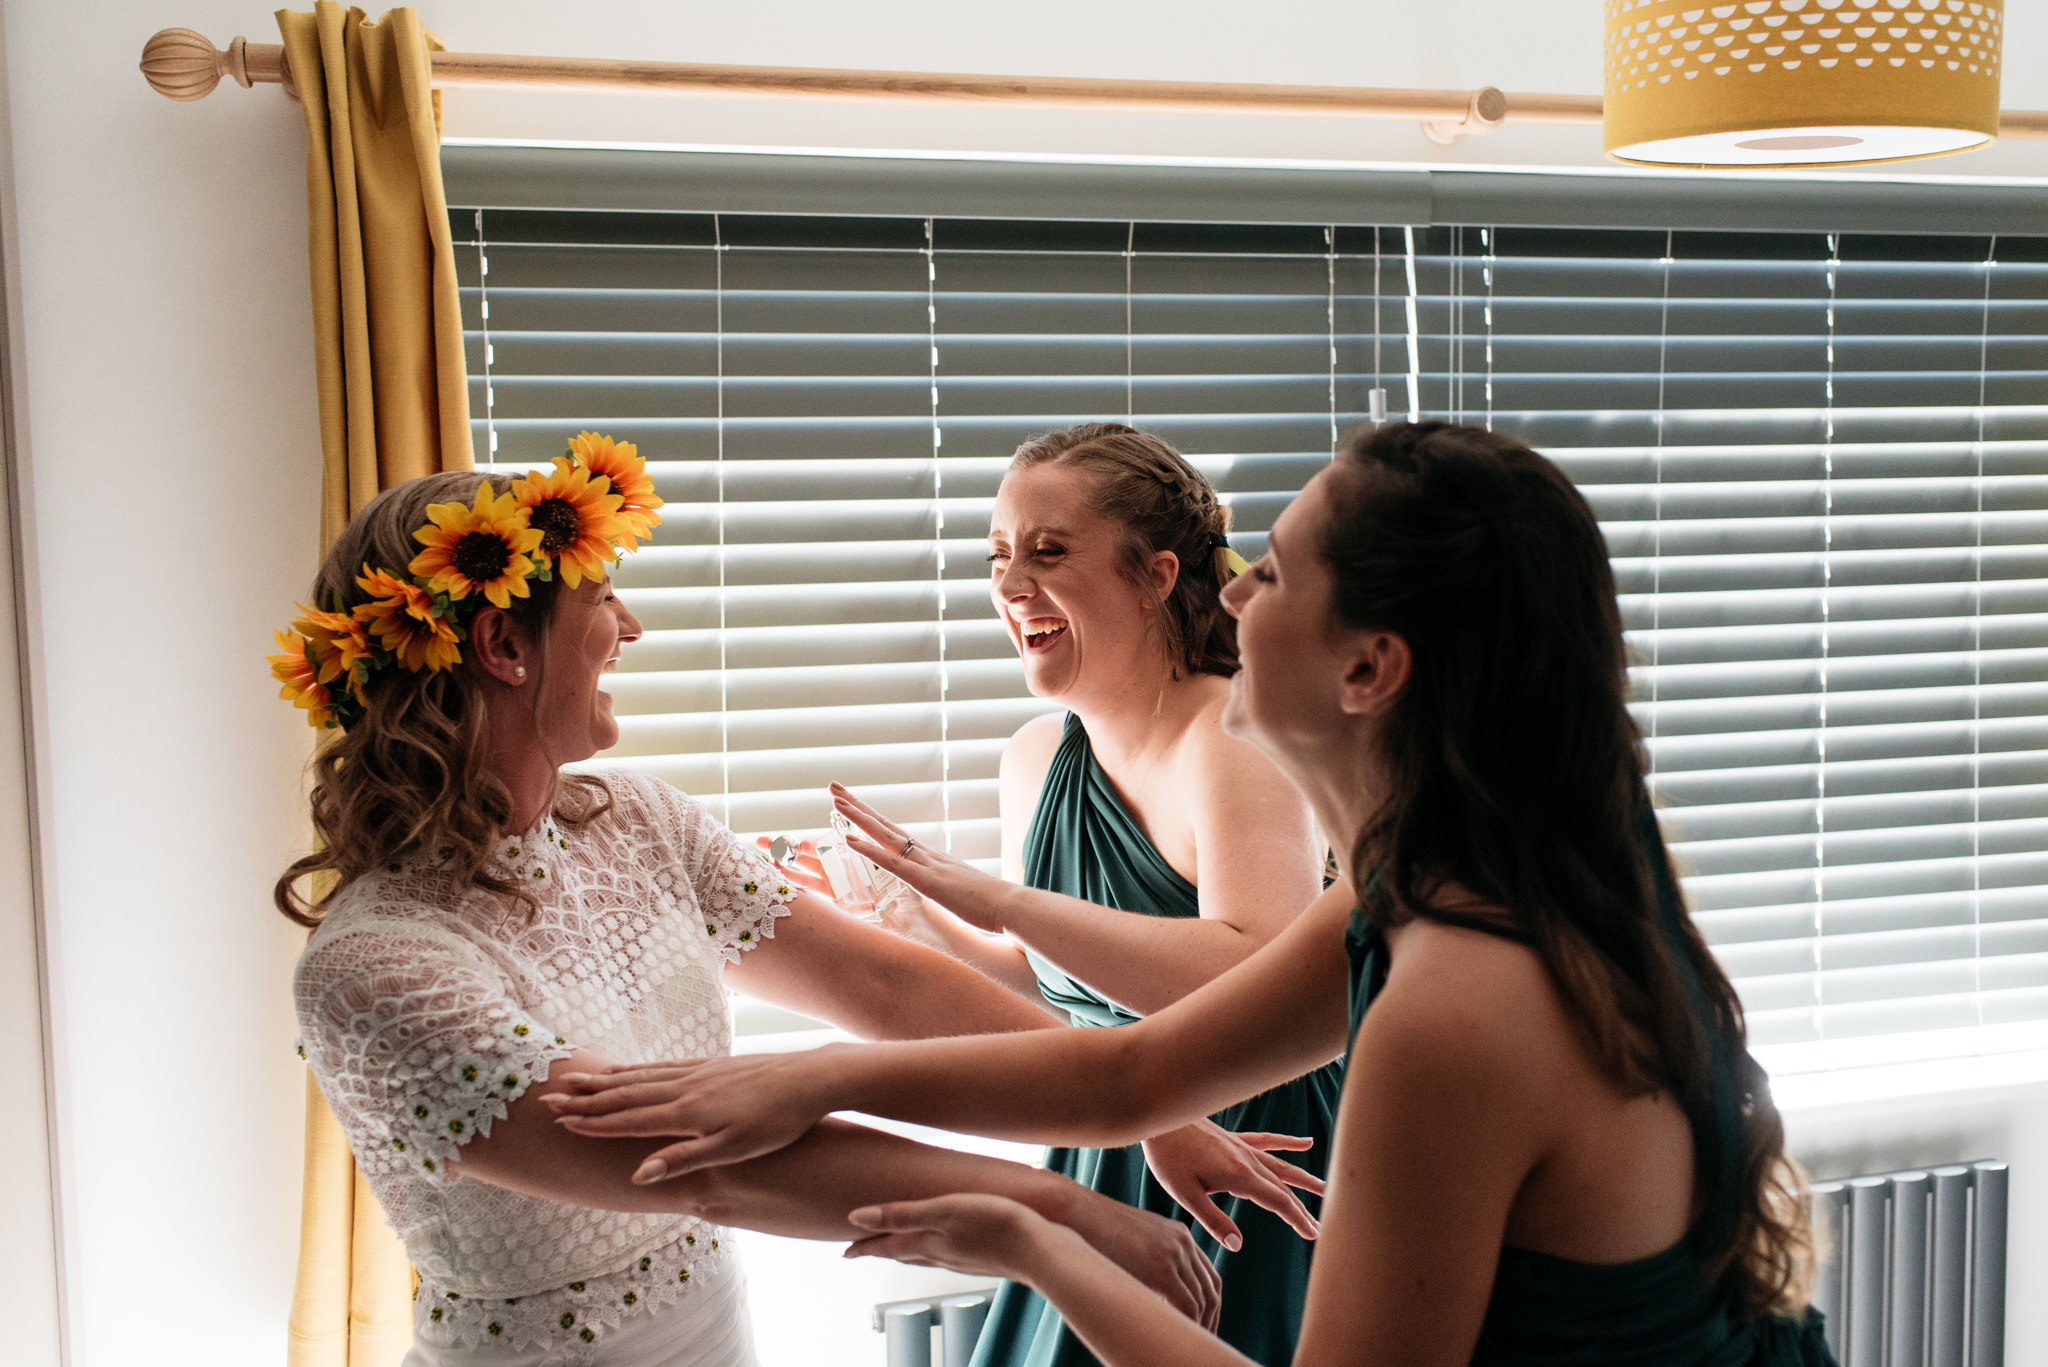 laughing with her bridesmaids